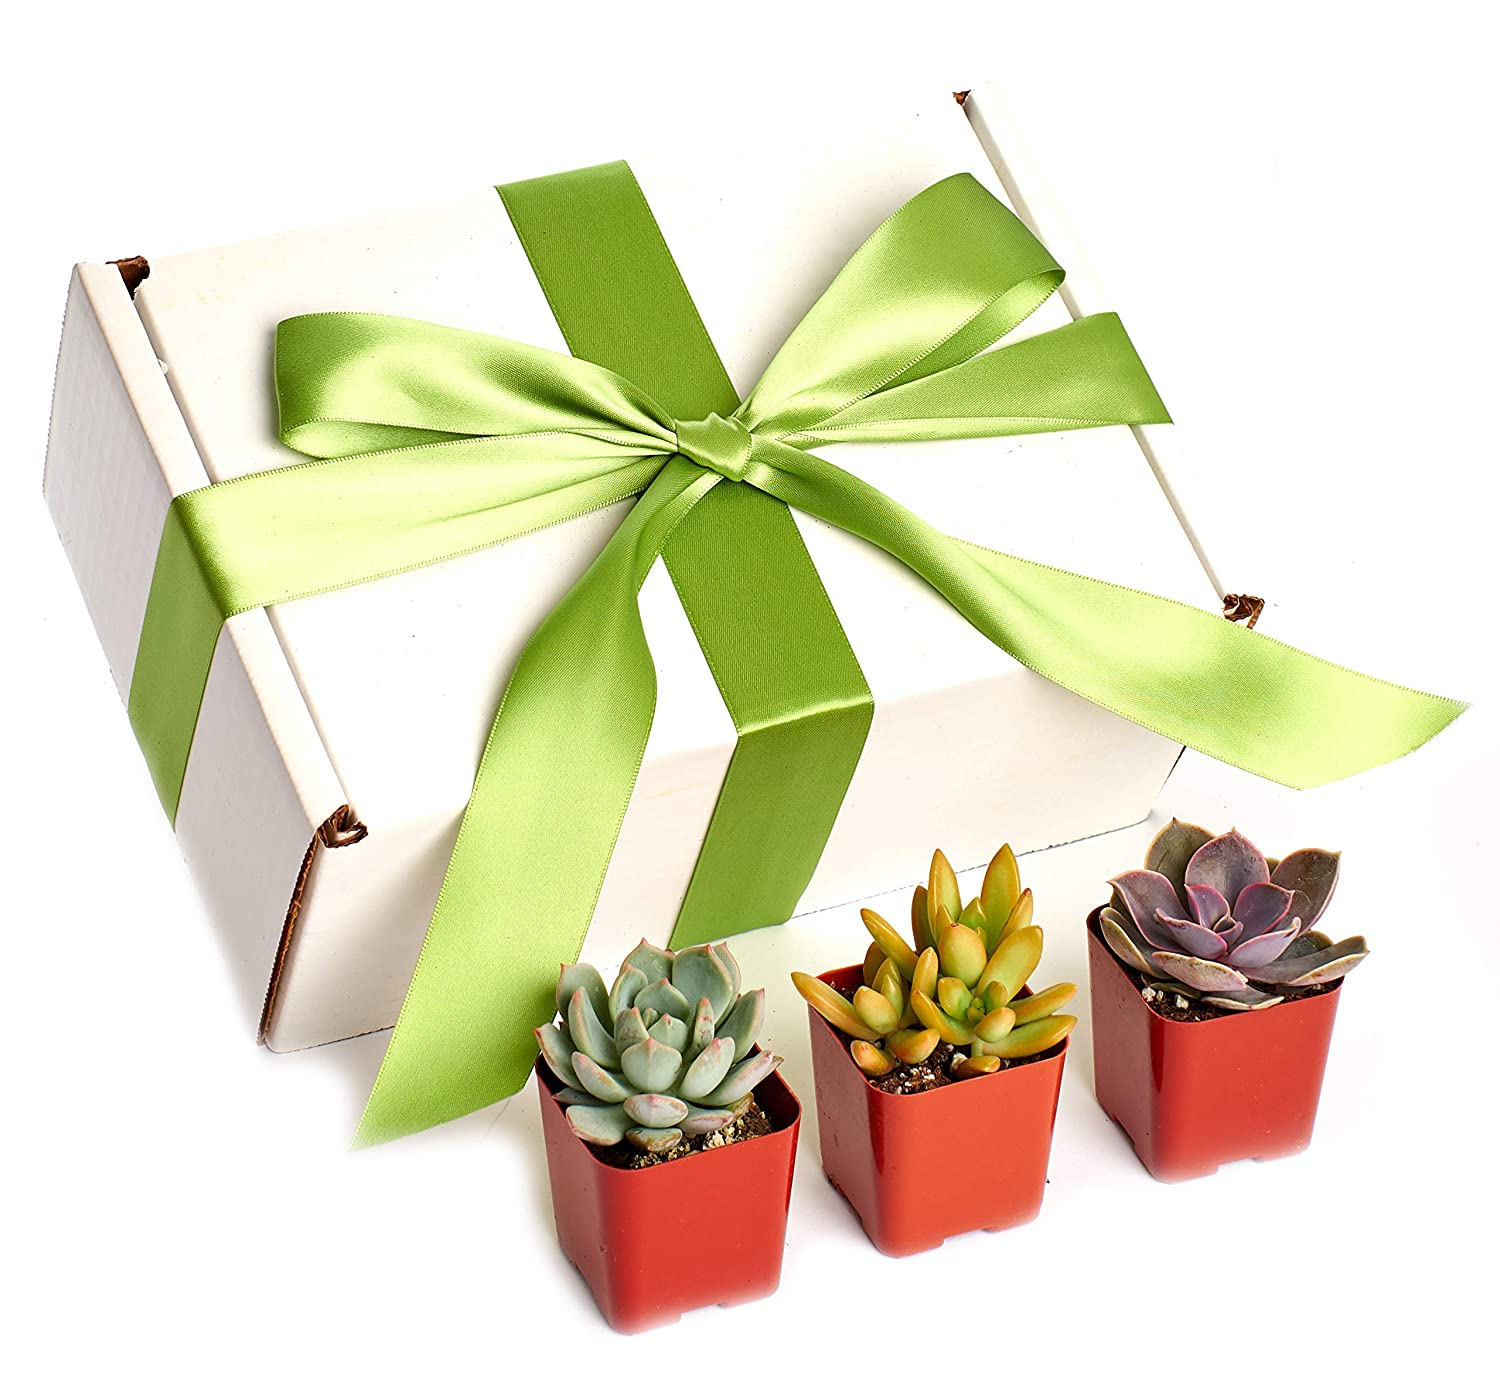 Christmas Succulent Gift.Shop Succulents Rosette 2 Plants In In Christmas Gift Box Pack Of 12 Real Live Potted Succulents